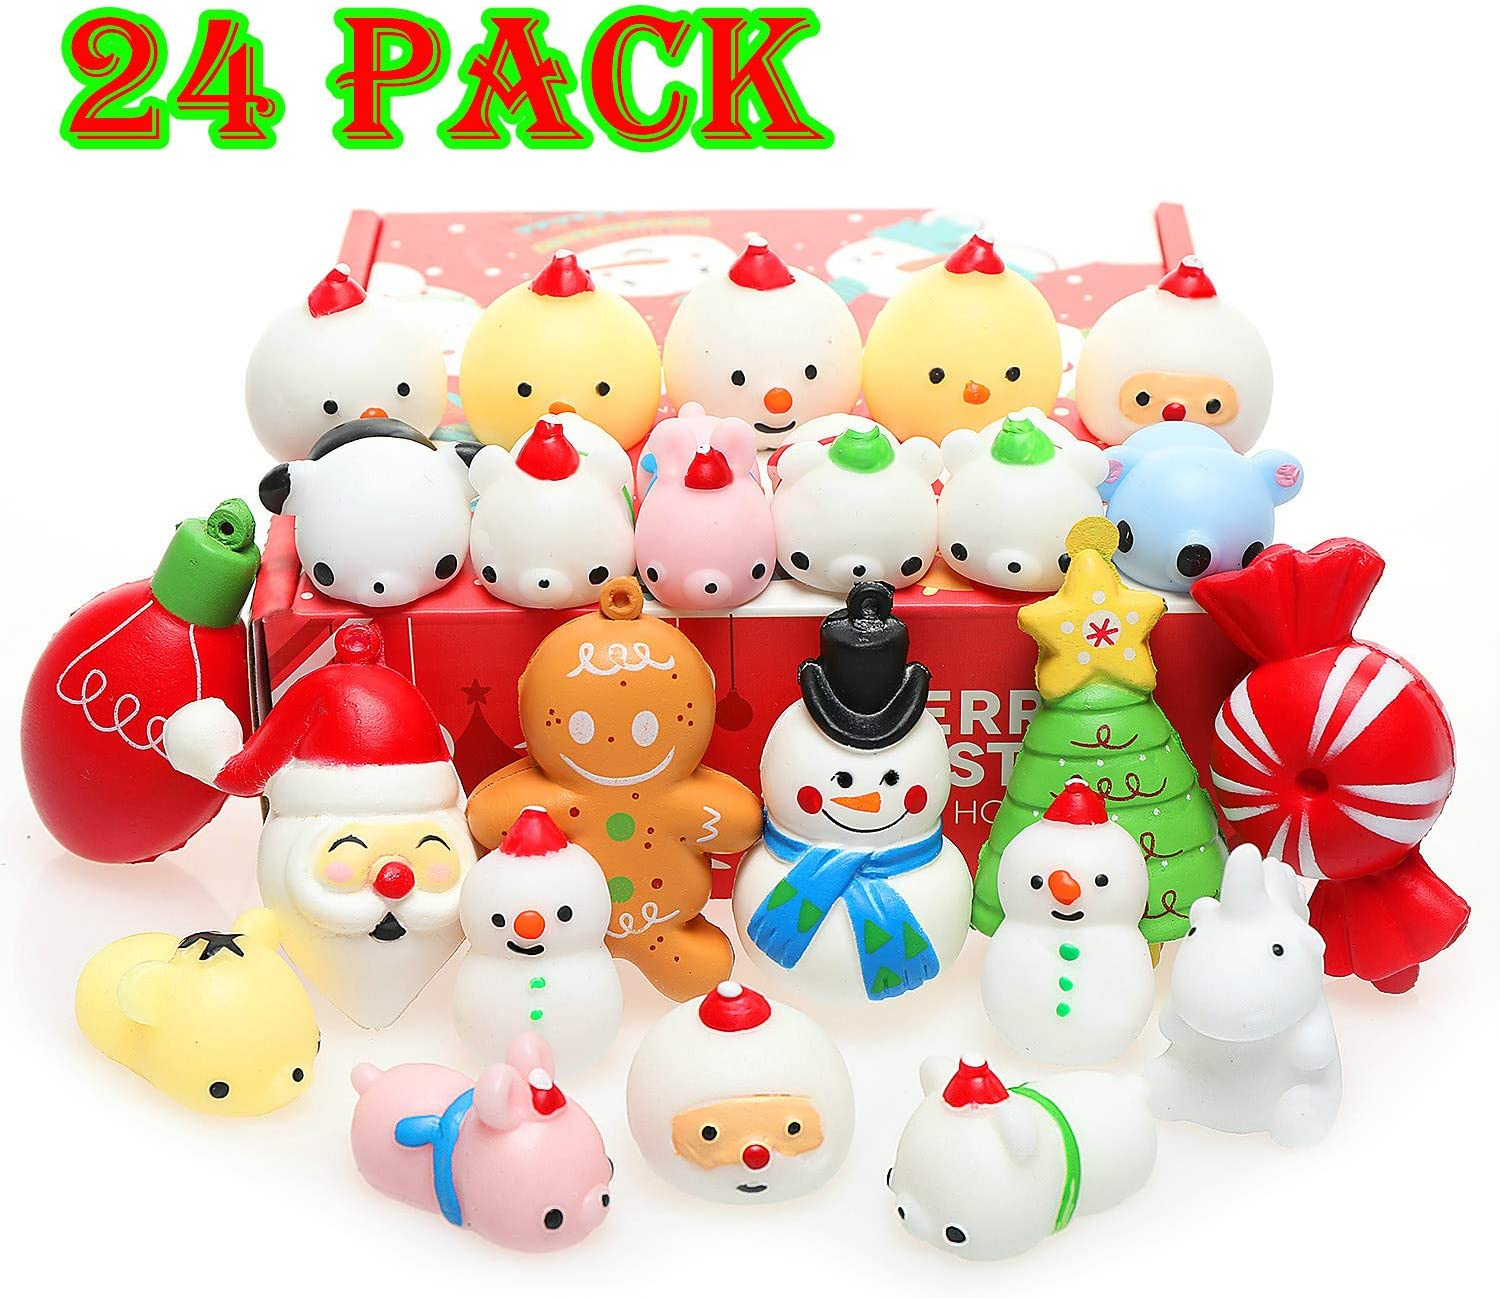 Nobasco Squishies, Mochi Squishy Toys - Christmas Kawaii Cat Squishys Slow Rising Animals - Party Favors, Goodie Bag, Birthday Gifts, Mini Squishies Stress Reliever Toy Pack